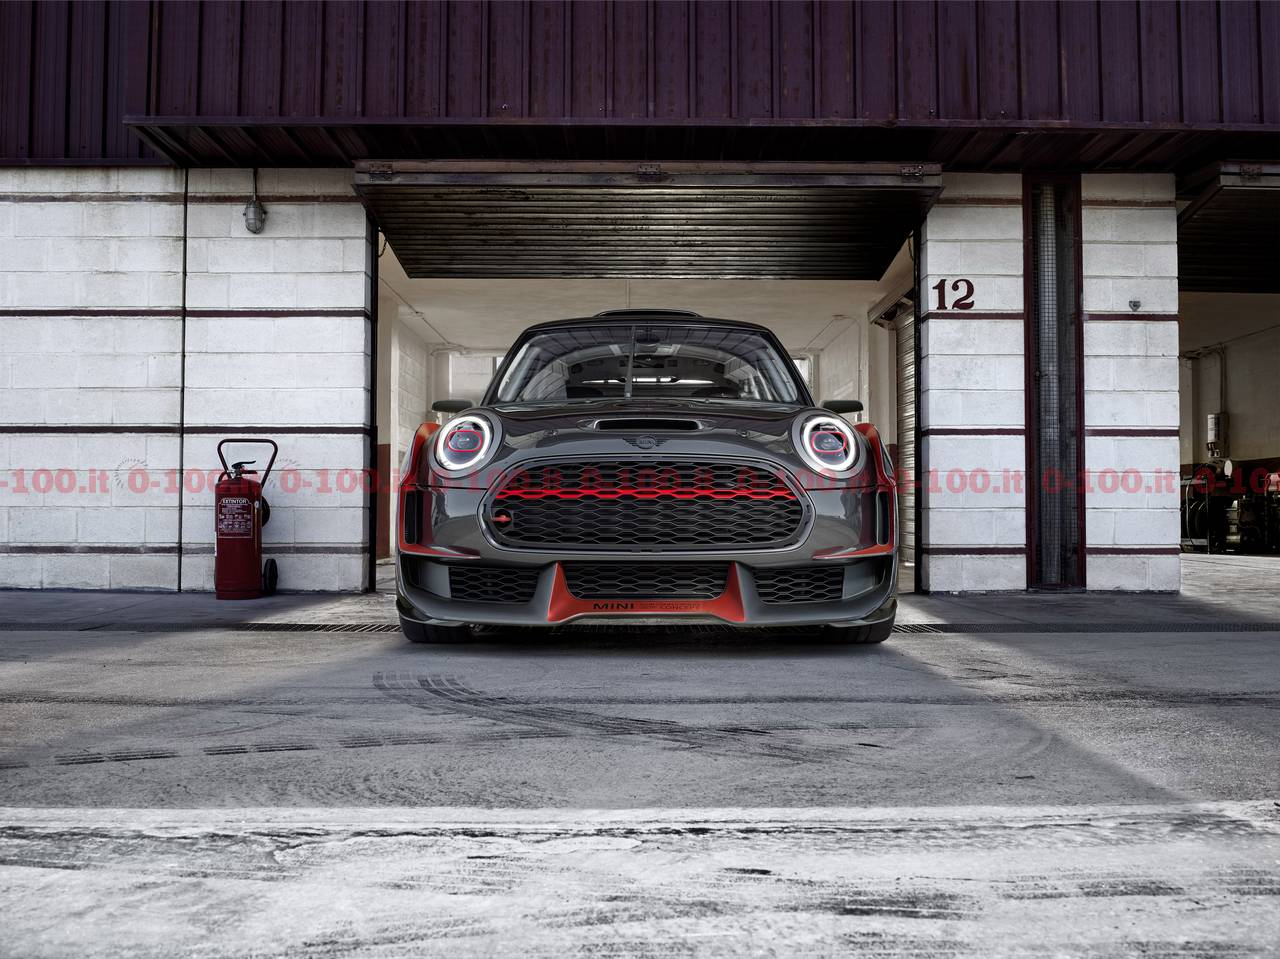 francoforte-2017-mini-john-cooper-works-gp-concept_0-100_15